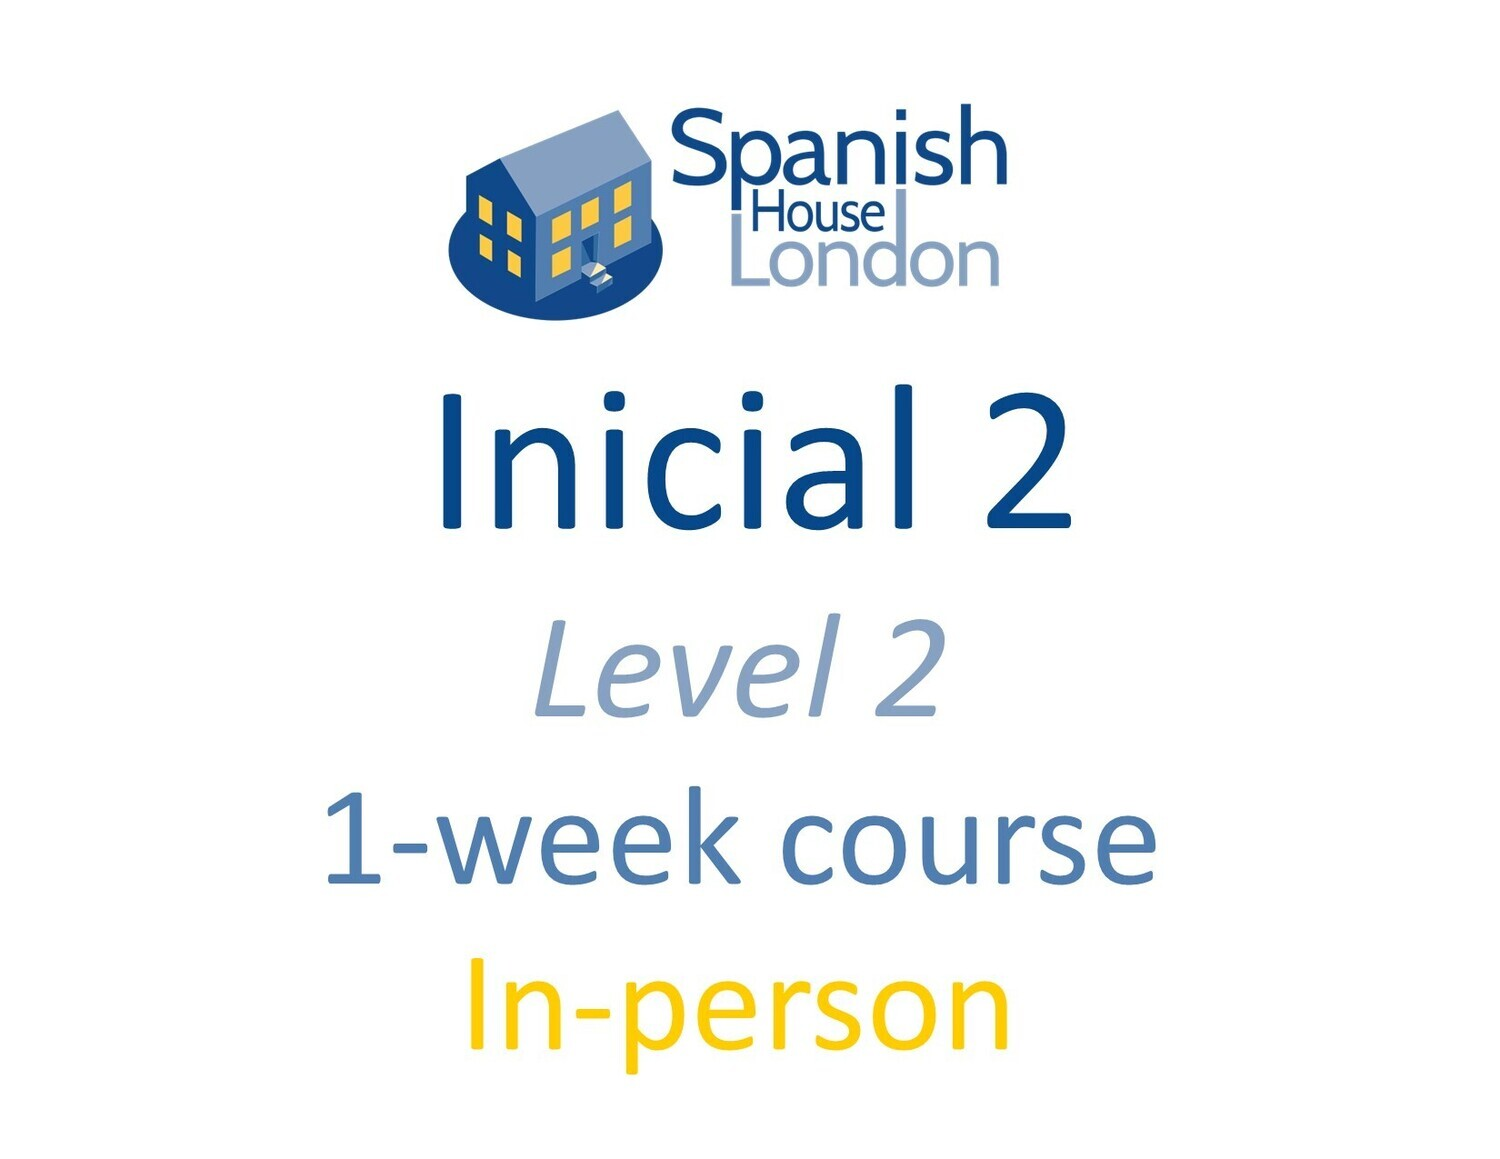 One-Week Intensive Inicial 2 Course starting on 1st November at 10am in Clapham North